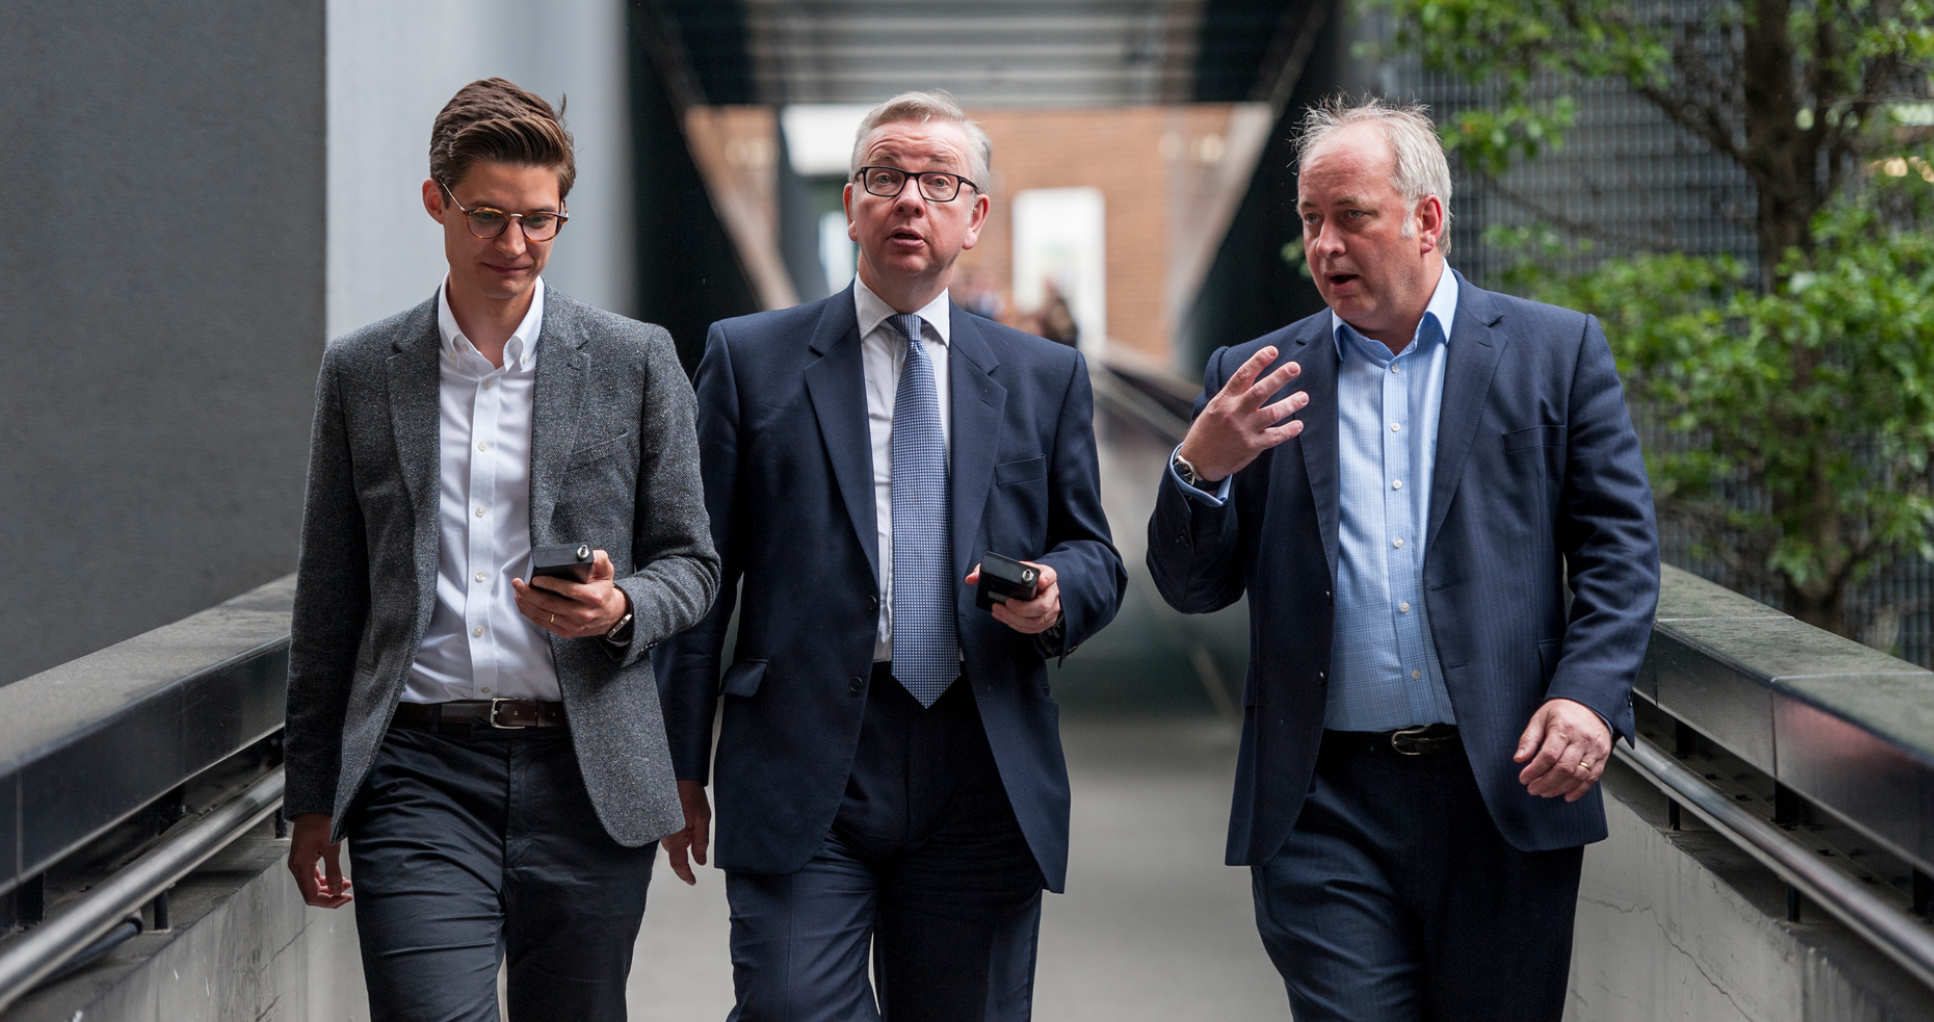 Dr Marc Stettler with Michael Gove and Professor Nick Jennings at the launch of the Government's Clean Air strategy at Imperial, May 2018